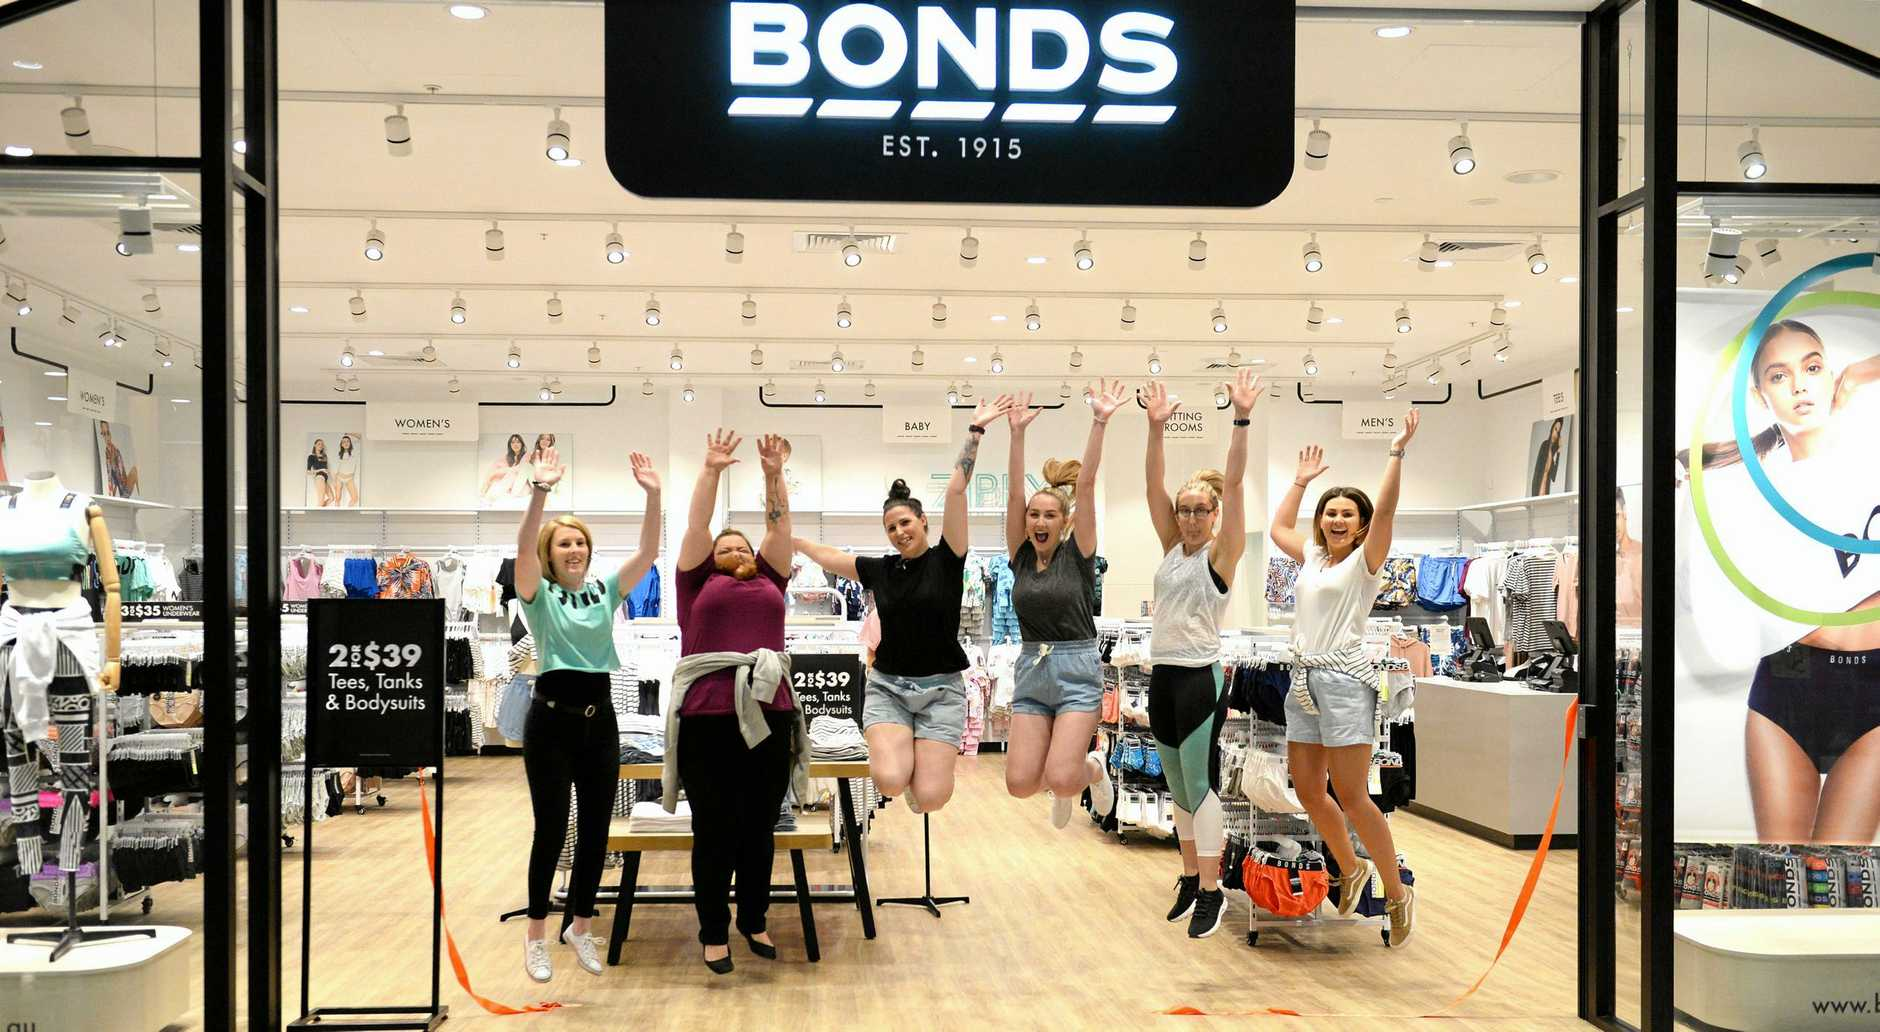 Staff celebrate the opening of the new Bonds store at Stockland.